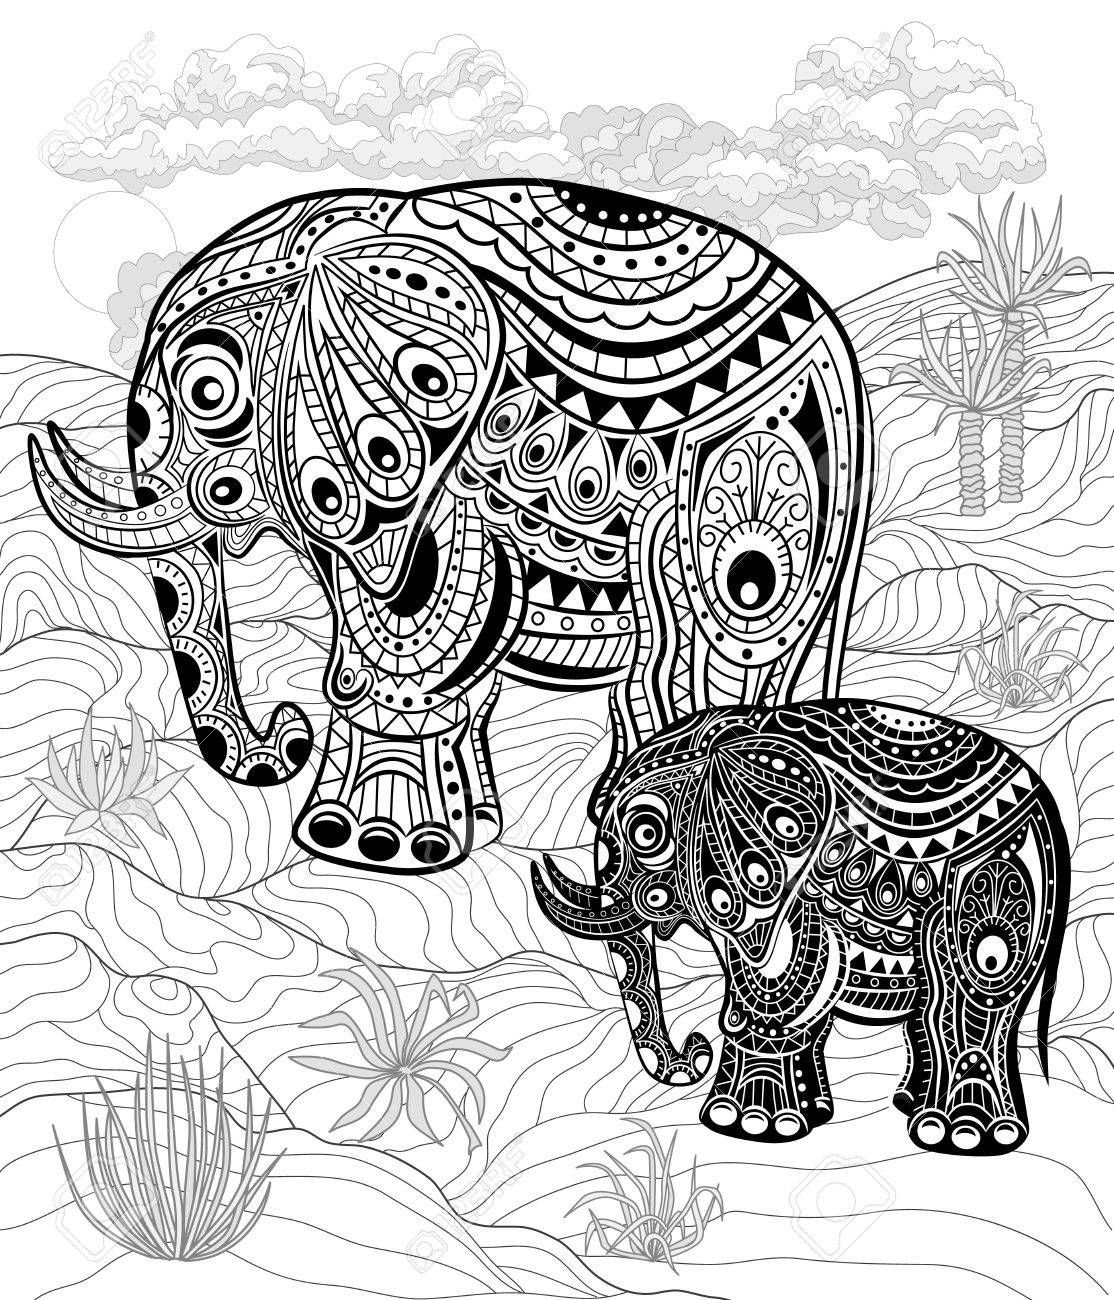 Black And White Elephant Drawing at GetDrawings.com | Free for ...